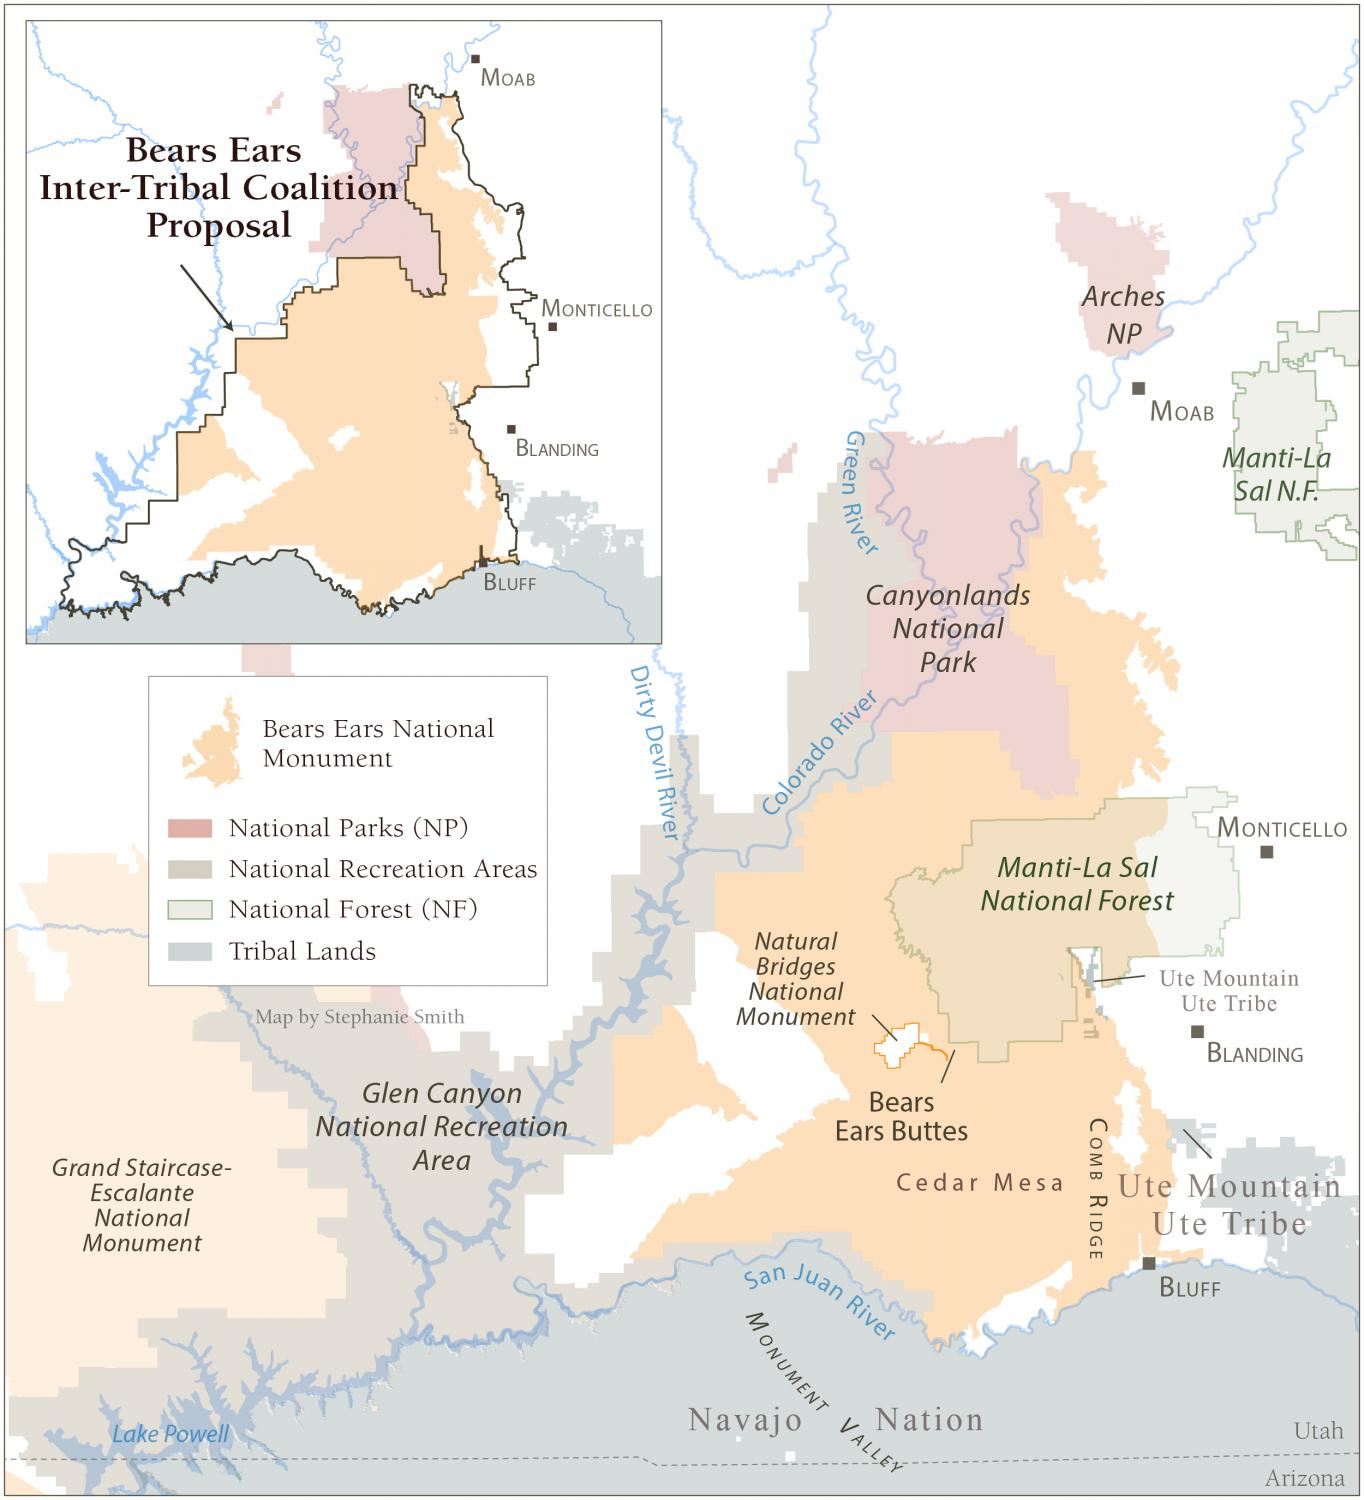 Boundary Comparison Map of Bears Ears National Monument